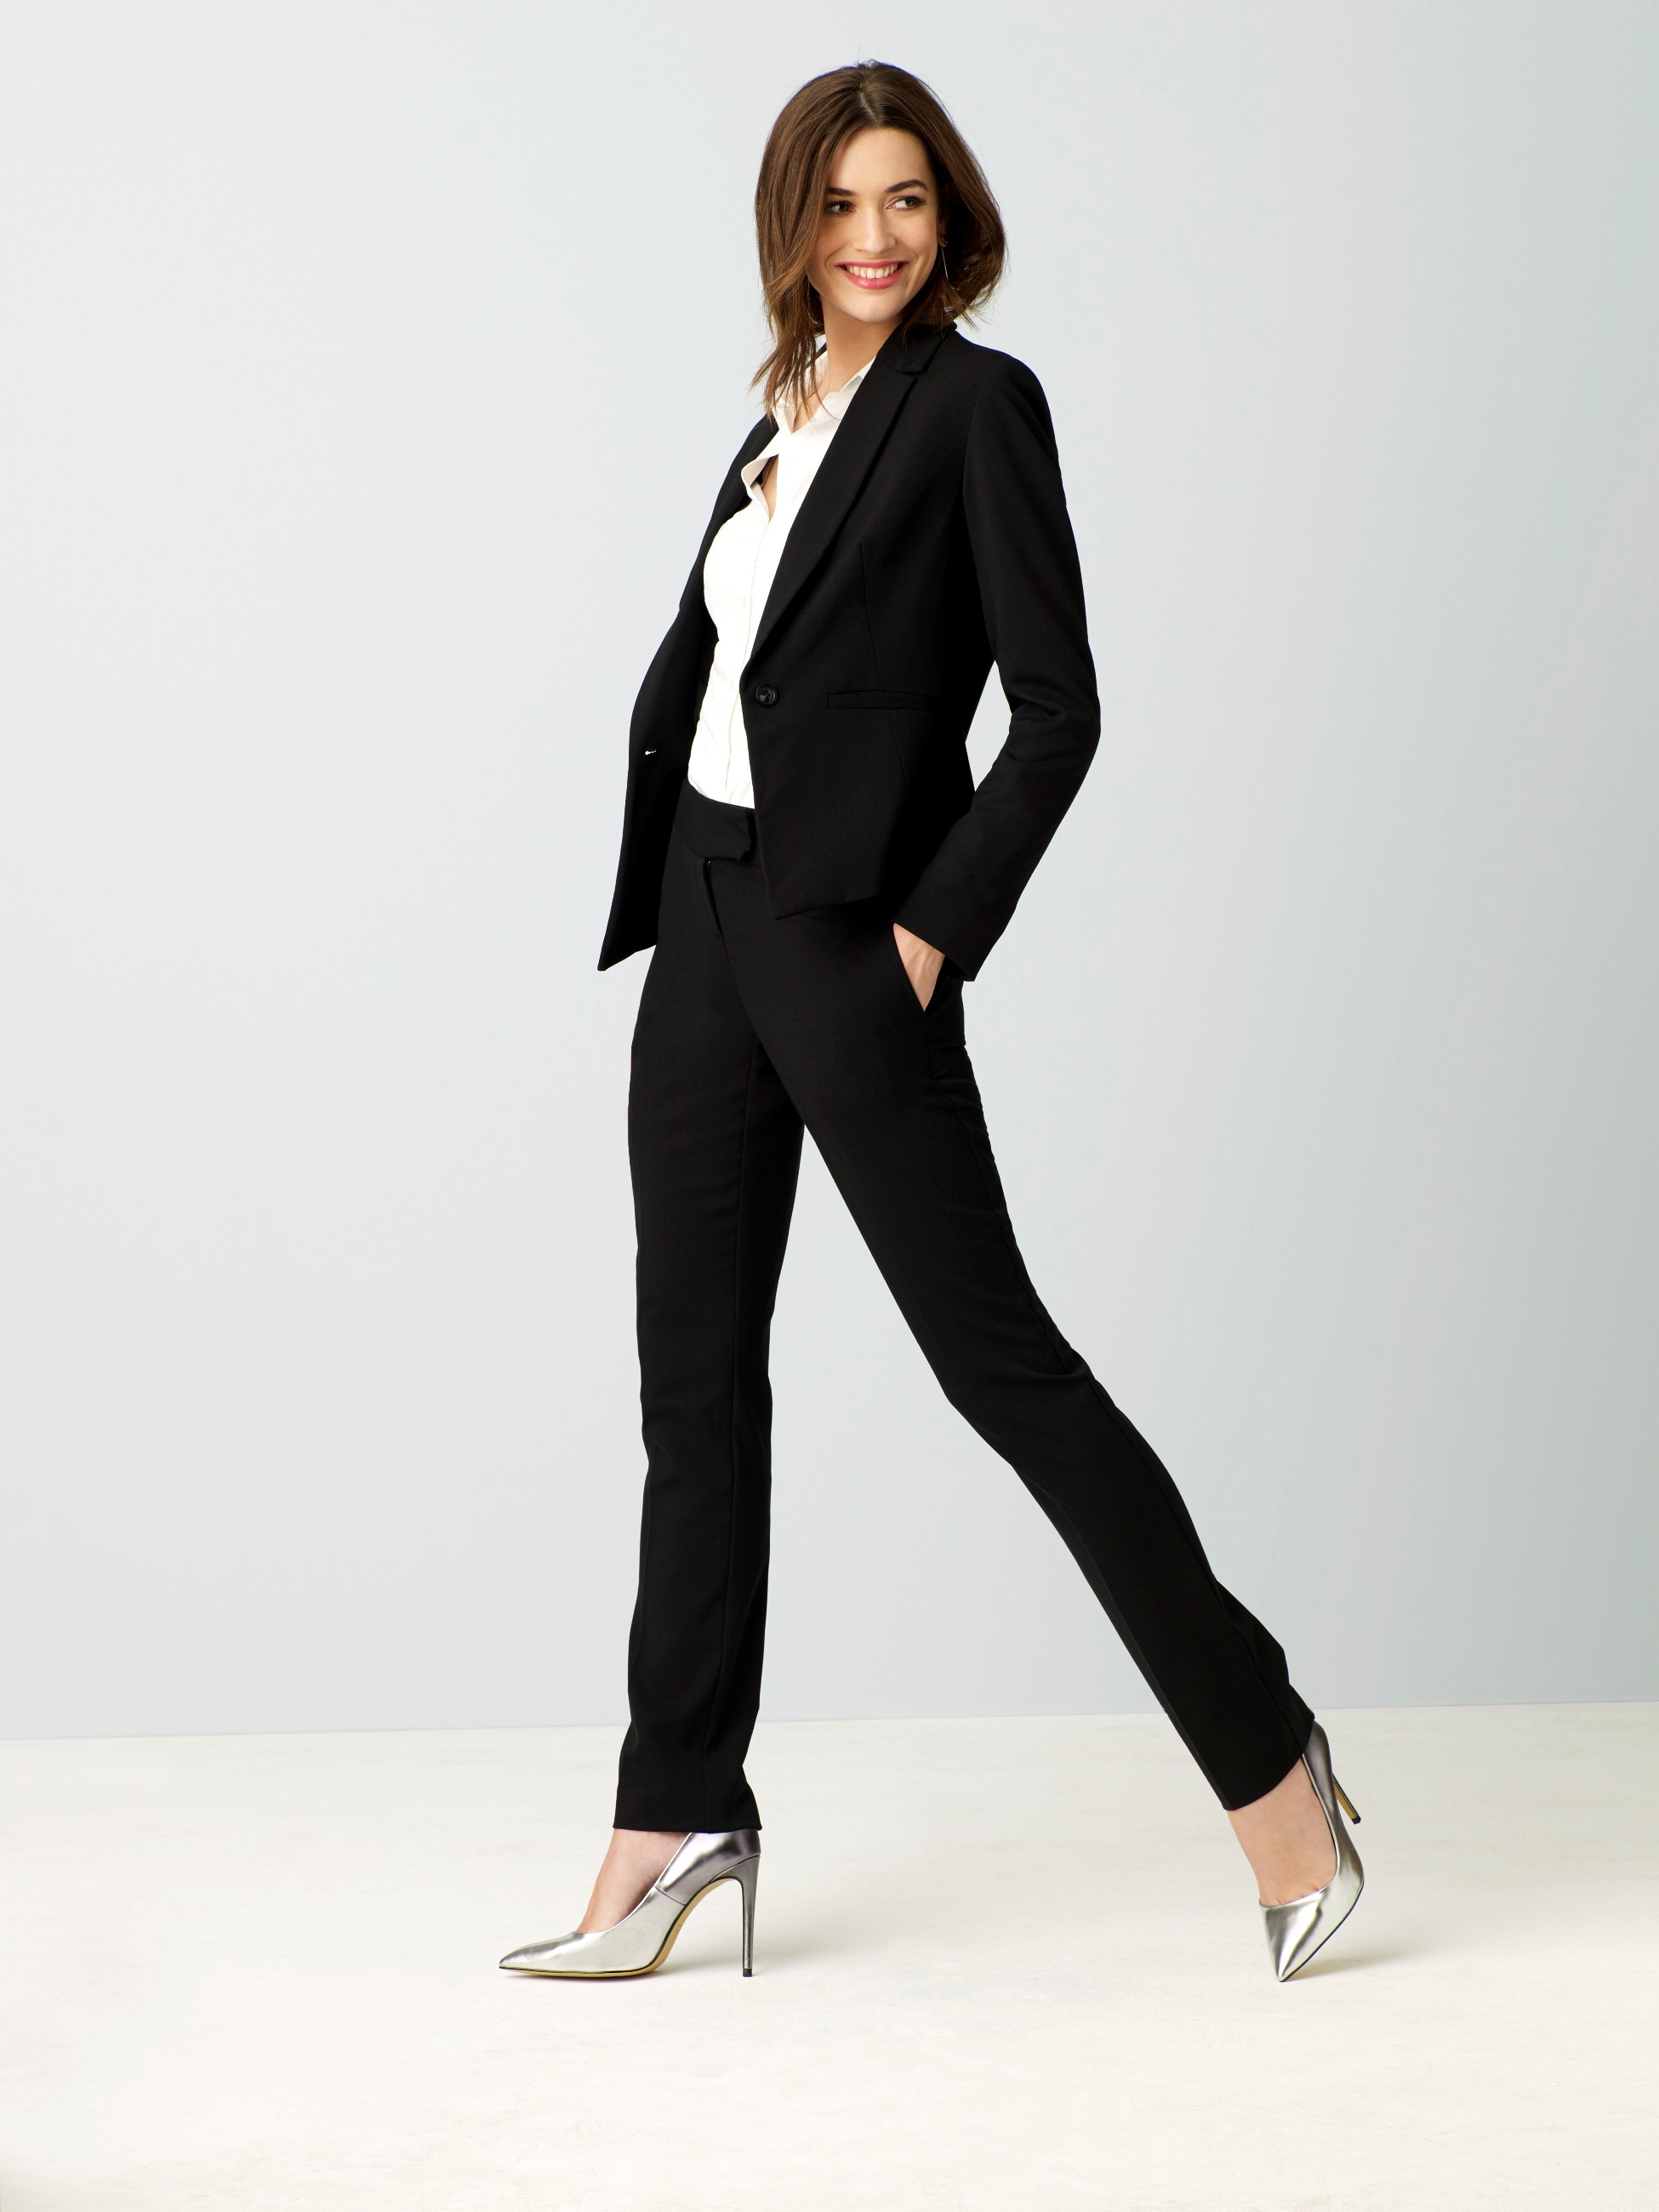 womens suit simply styled womenu0027s suit jacket DIWRPLZ